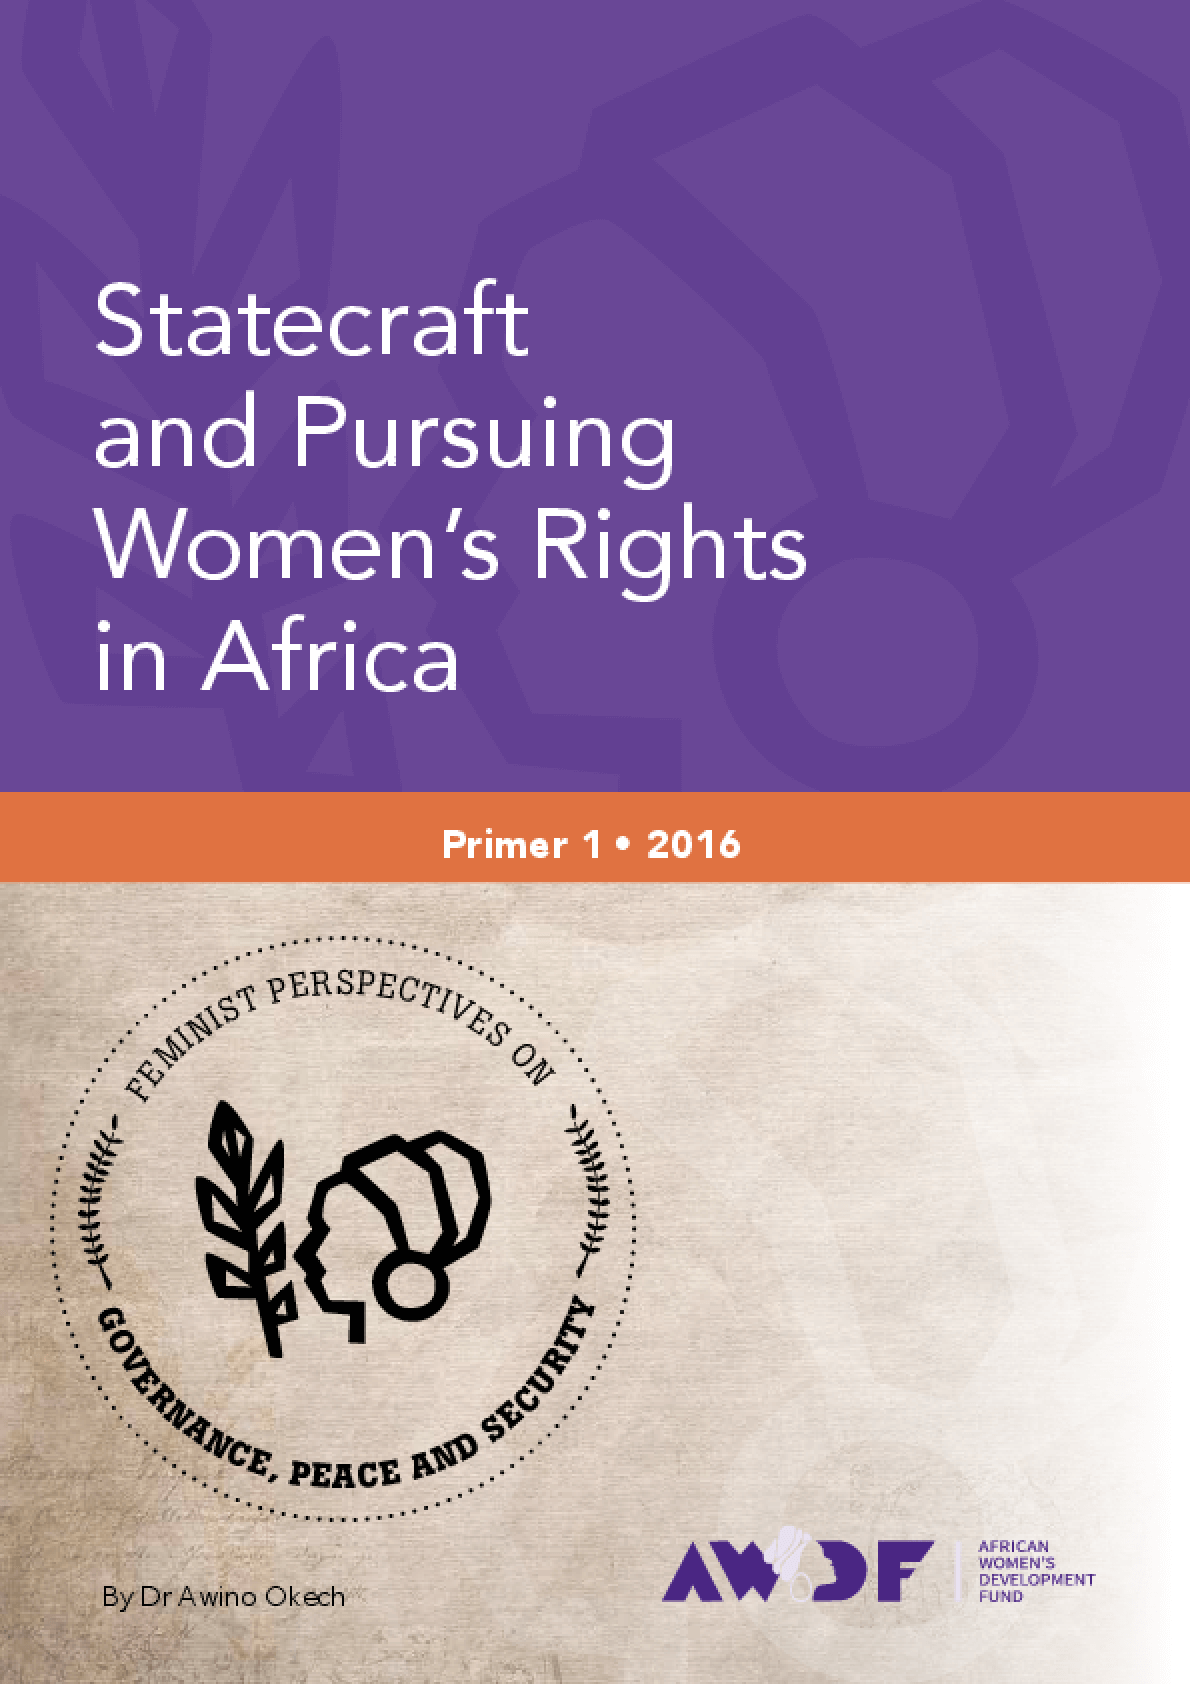 Statecraft and Pursuing Women's Rights in Africa